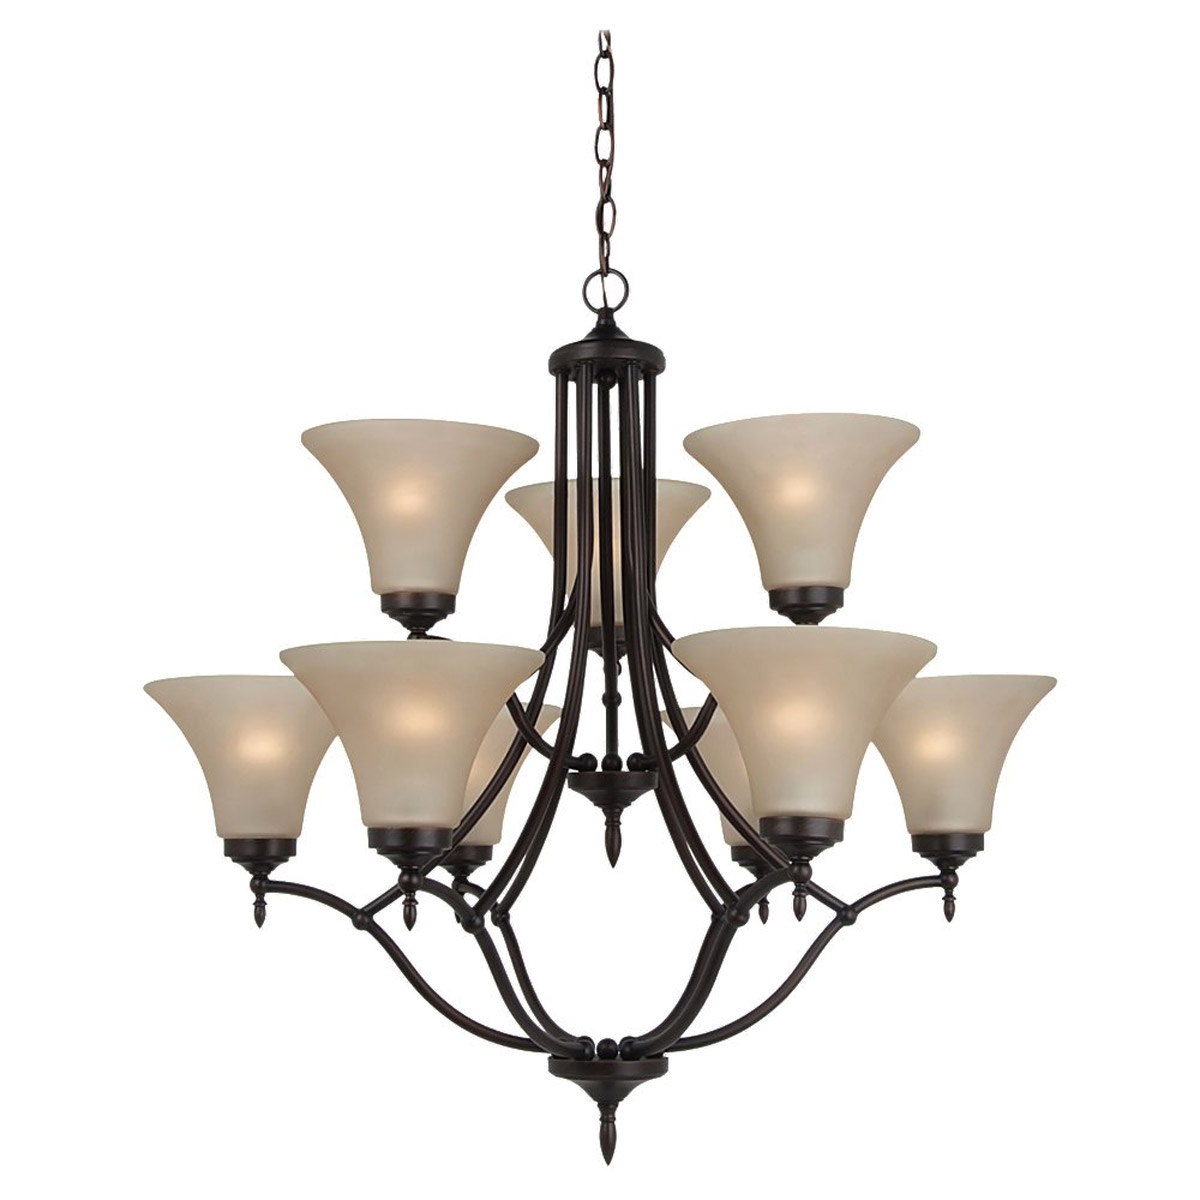 Sea Gull 31182-710 Montreal 9 Light 30 inch Burnt Sienna Chandelier Ceiling Light in Cafe Tint Glass, Standard photo